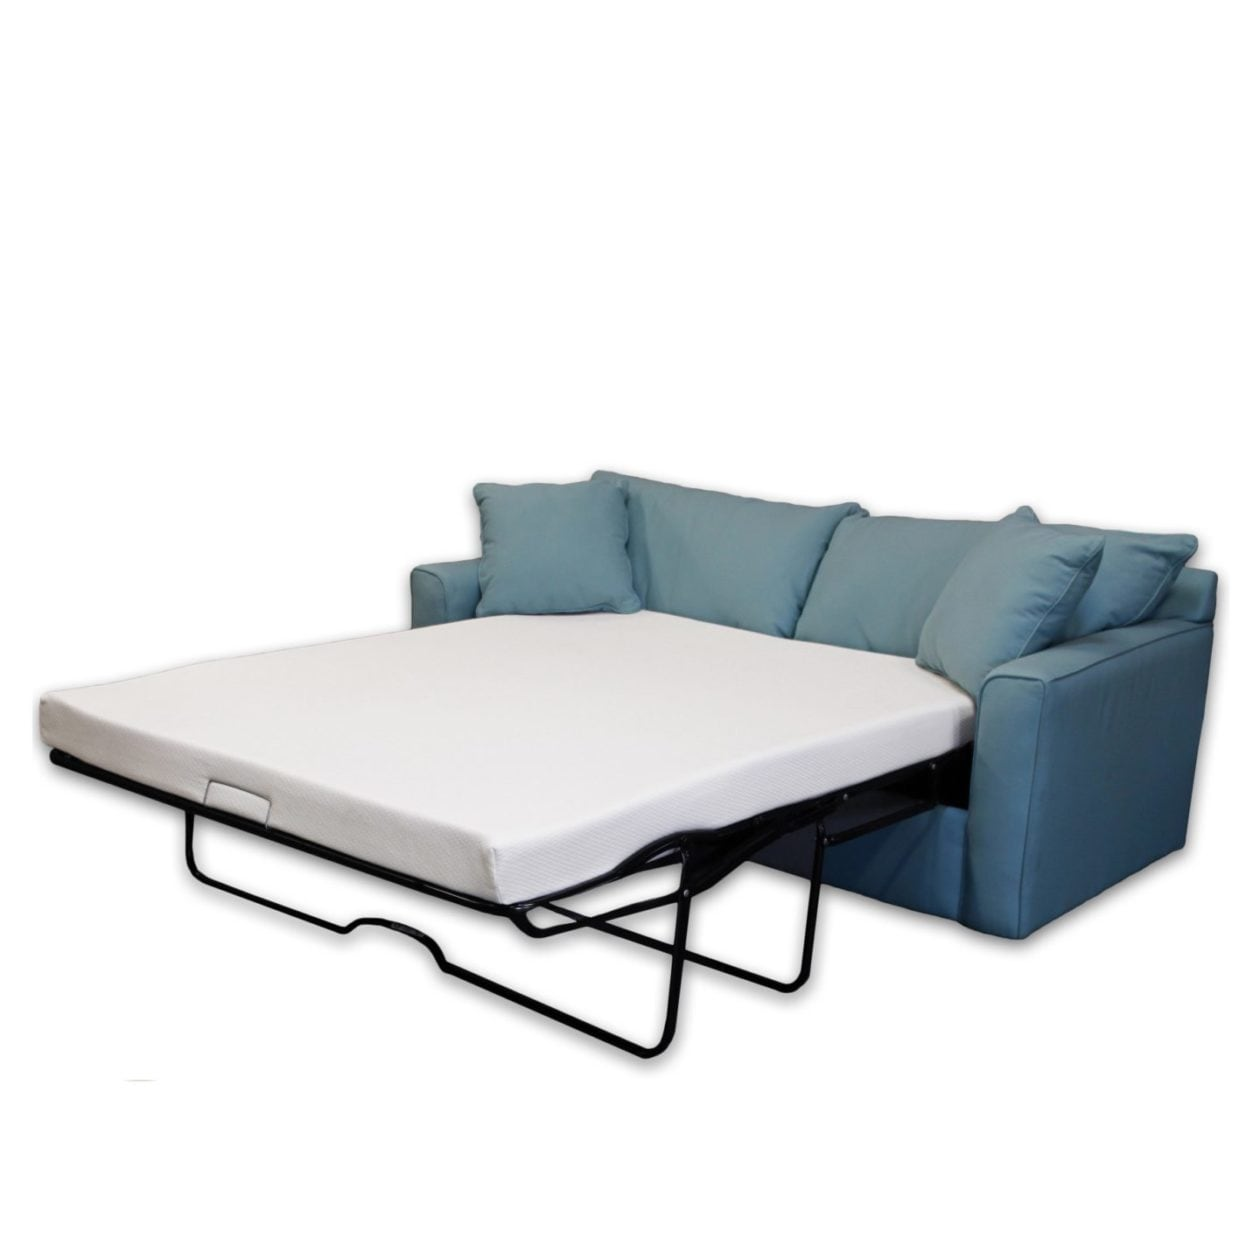 How To Make A Pull Out Sofa Bed More Comfortable Overstockcom